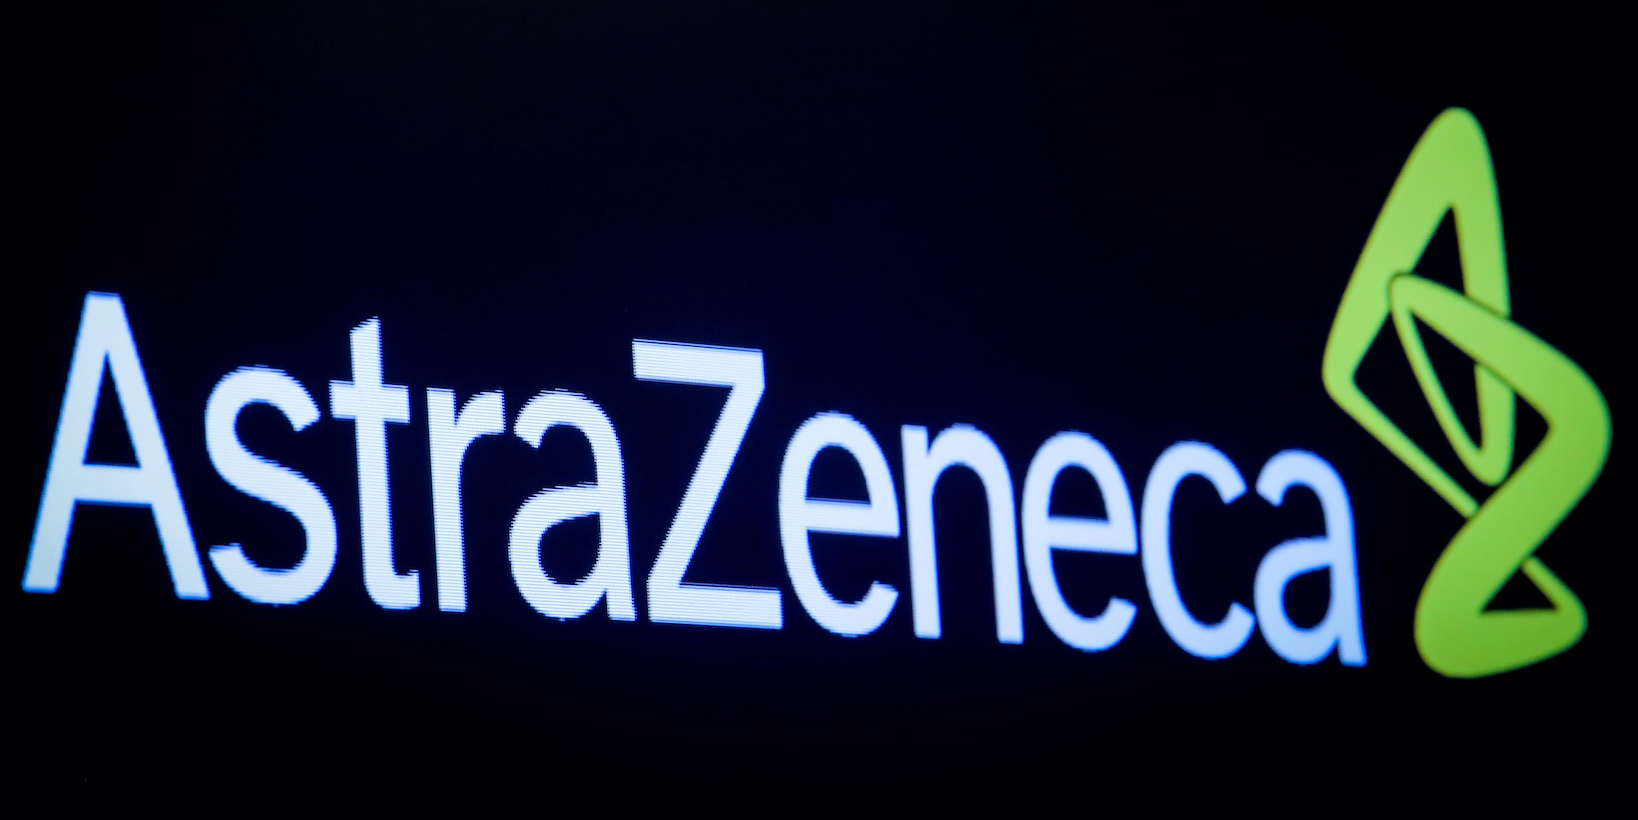 AstraZeneca, Gilead merger likely to hit political, strategic hurdles